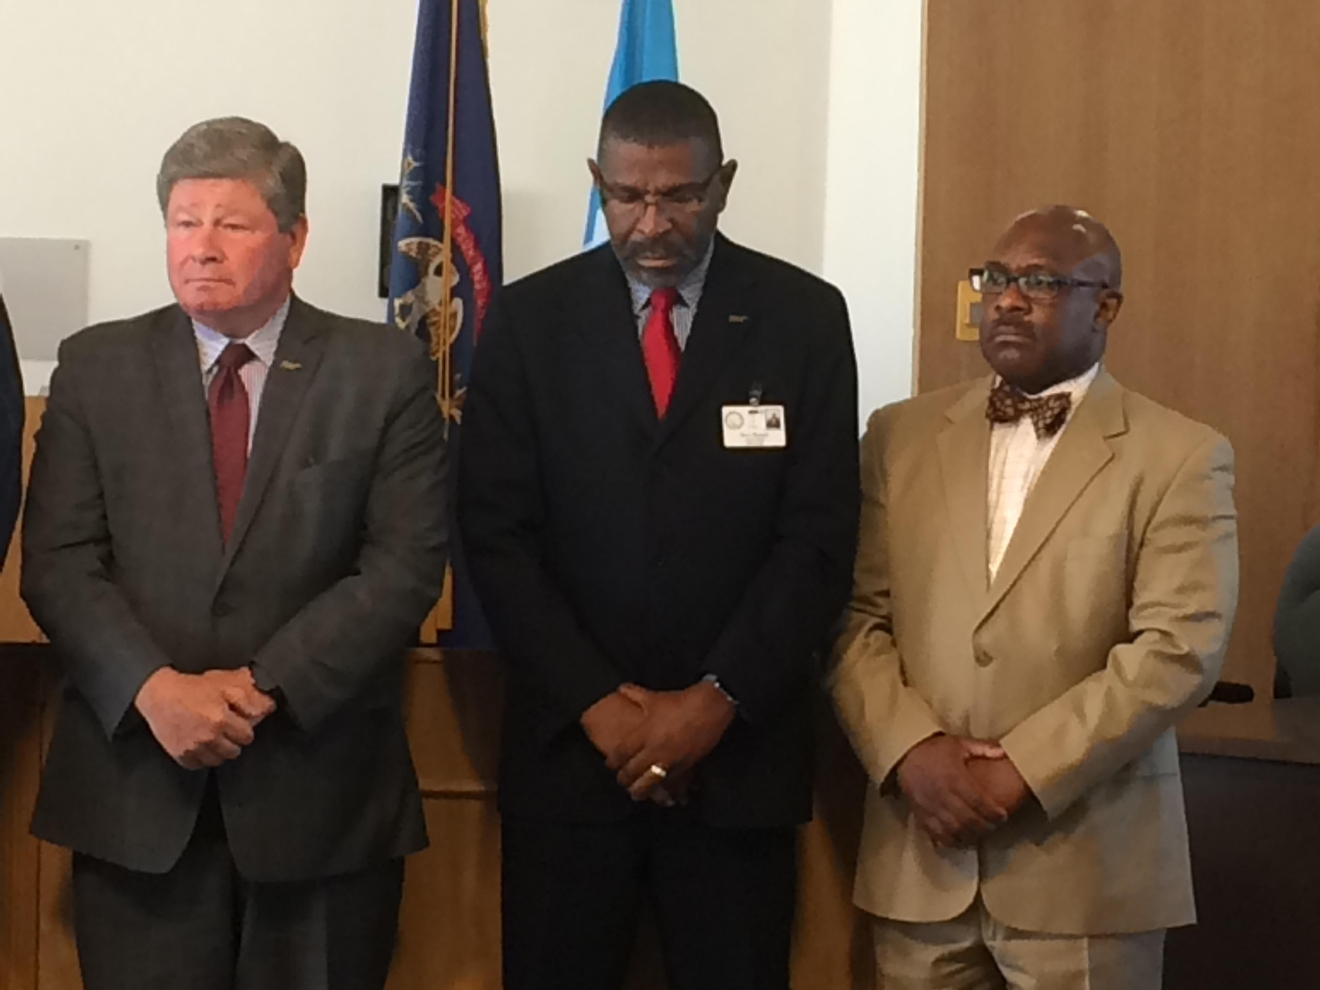 State, county and local officials were on hand for the announcement. (Mike Horne - NBC25/FOX66 News)